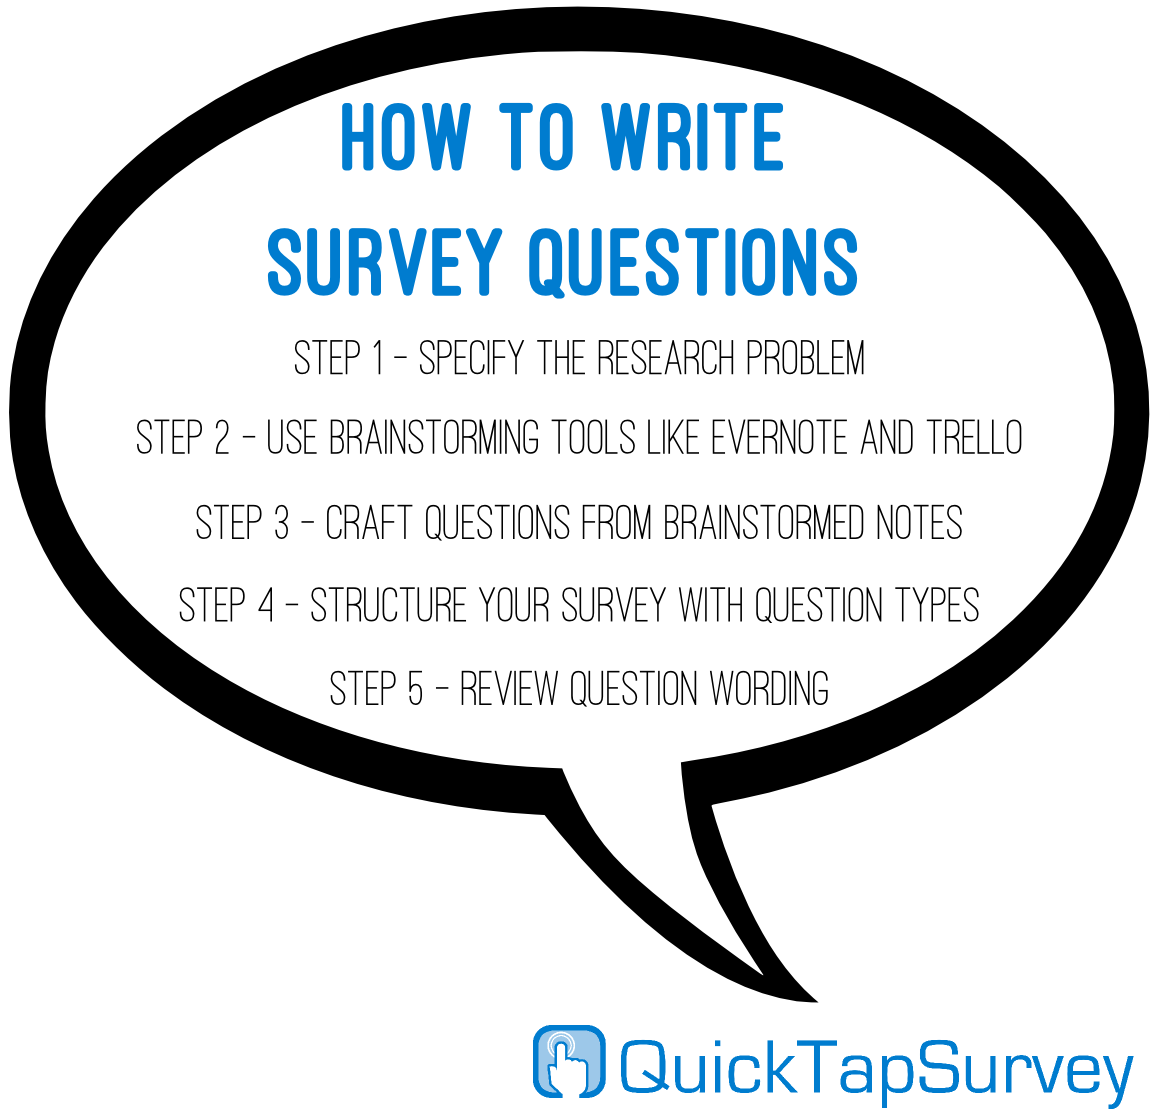 How To Write Survey Questionnaire  Yahoo Image Search Results